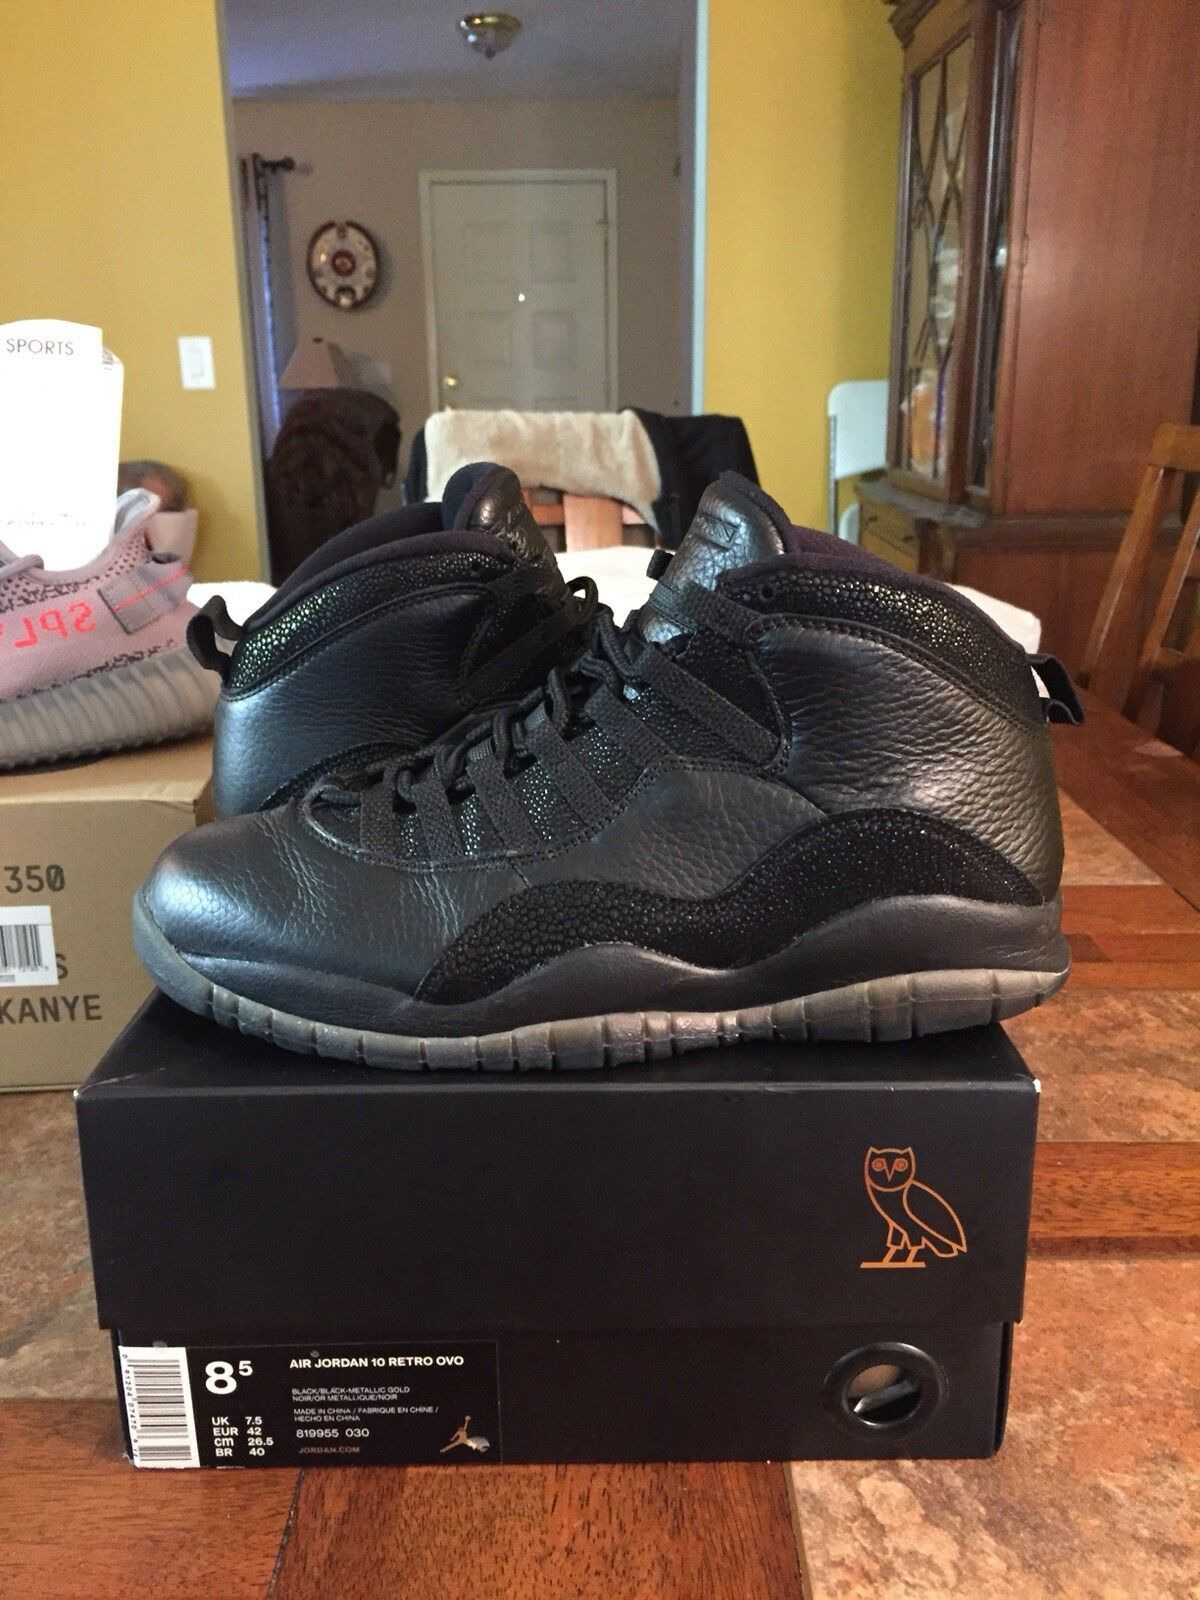 2011 Air Jordan 10 Retro OVO Black Sz. 8.5  w/ Original Box.